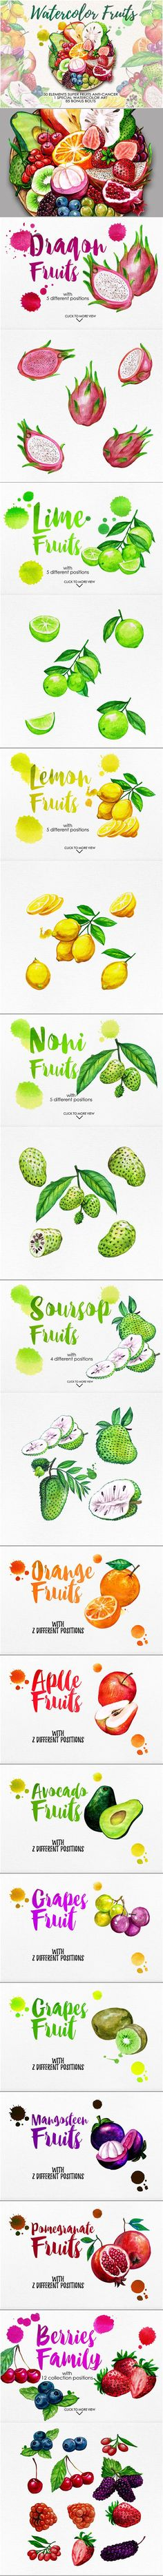 Watercolor Fruits Vol. 4 by iGRAPHOBIA on @creativemarket